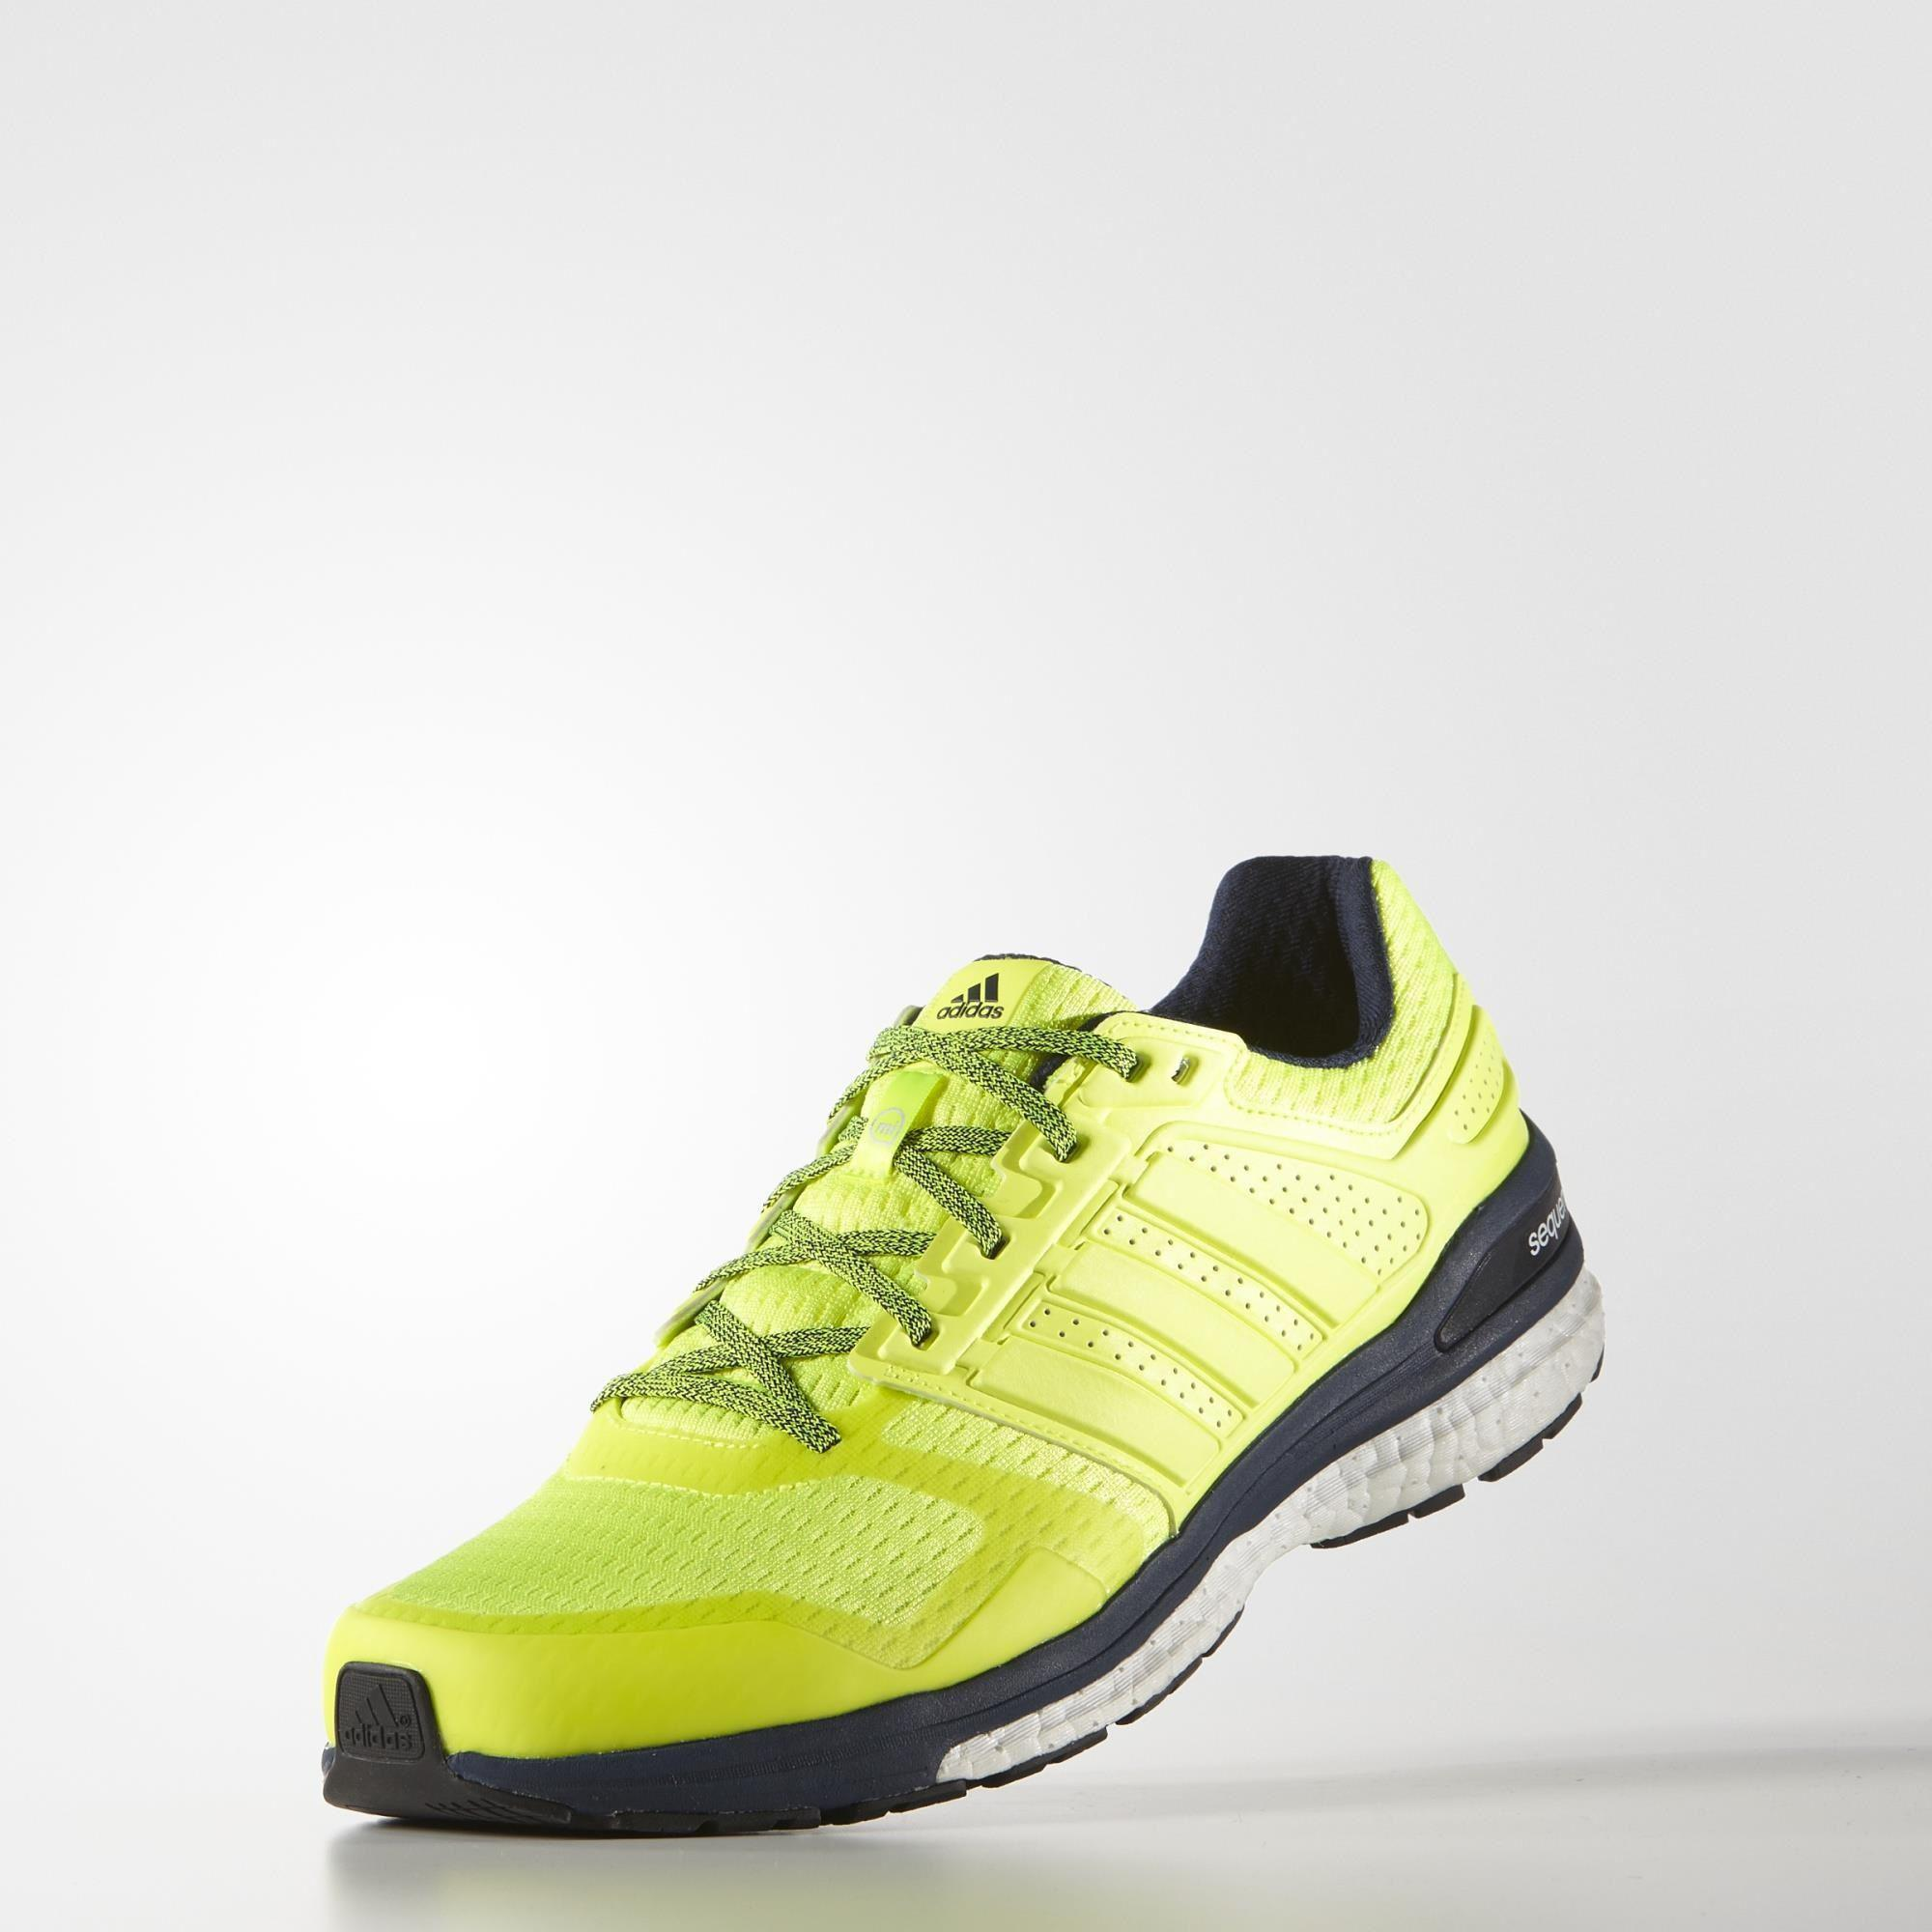 cffbc9f53 Adidas Mens Supernova Sequence Boost 8 Running Shoes - Yellow ...